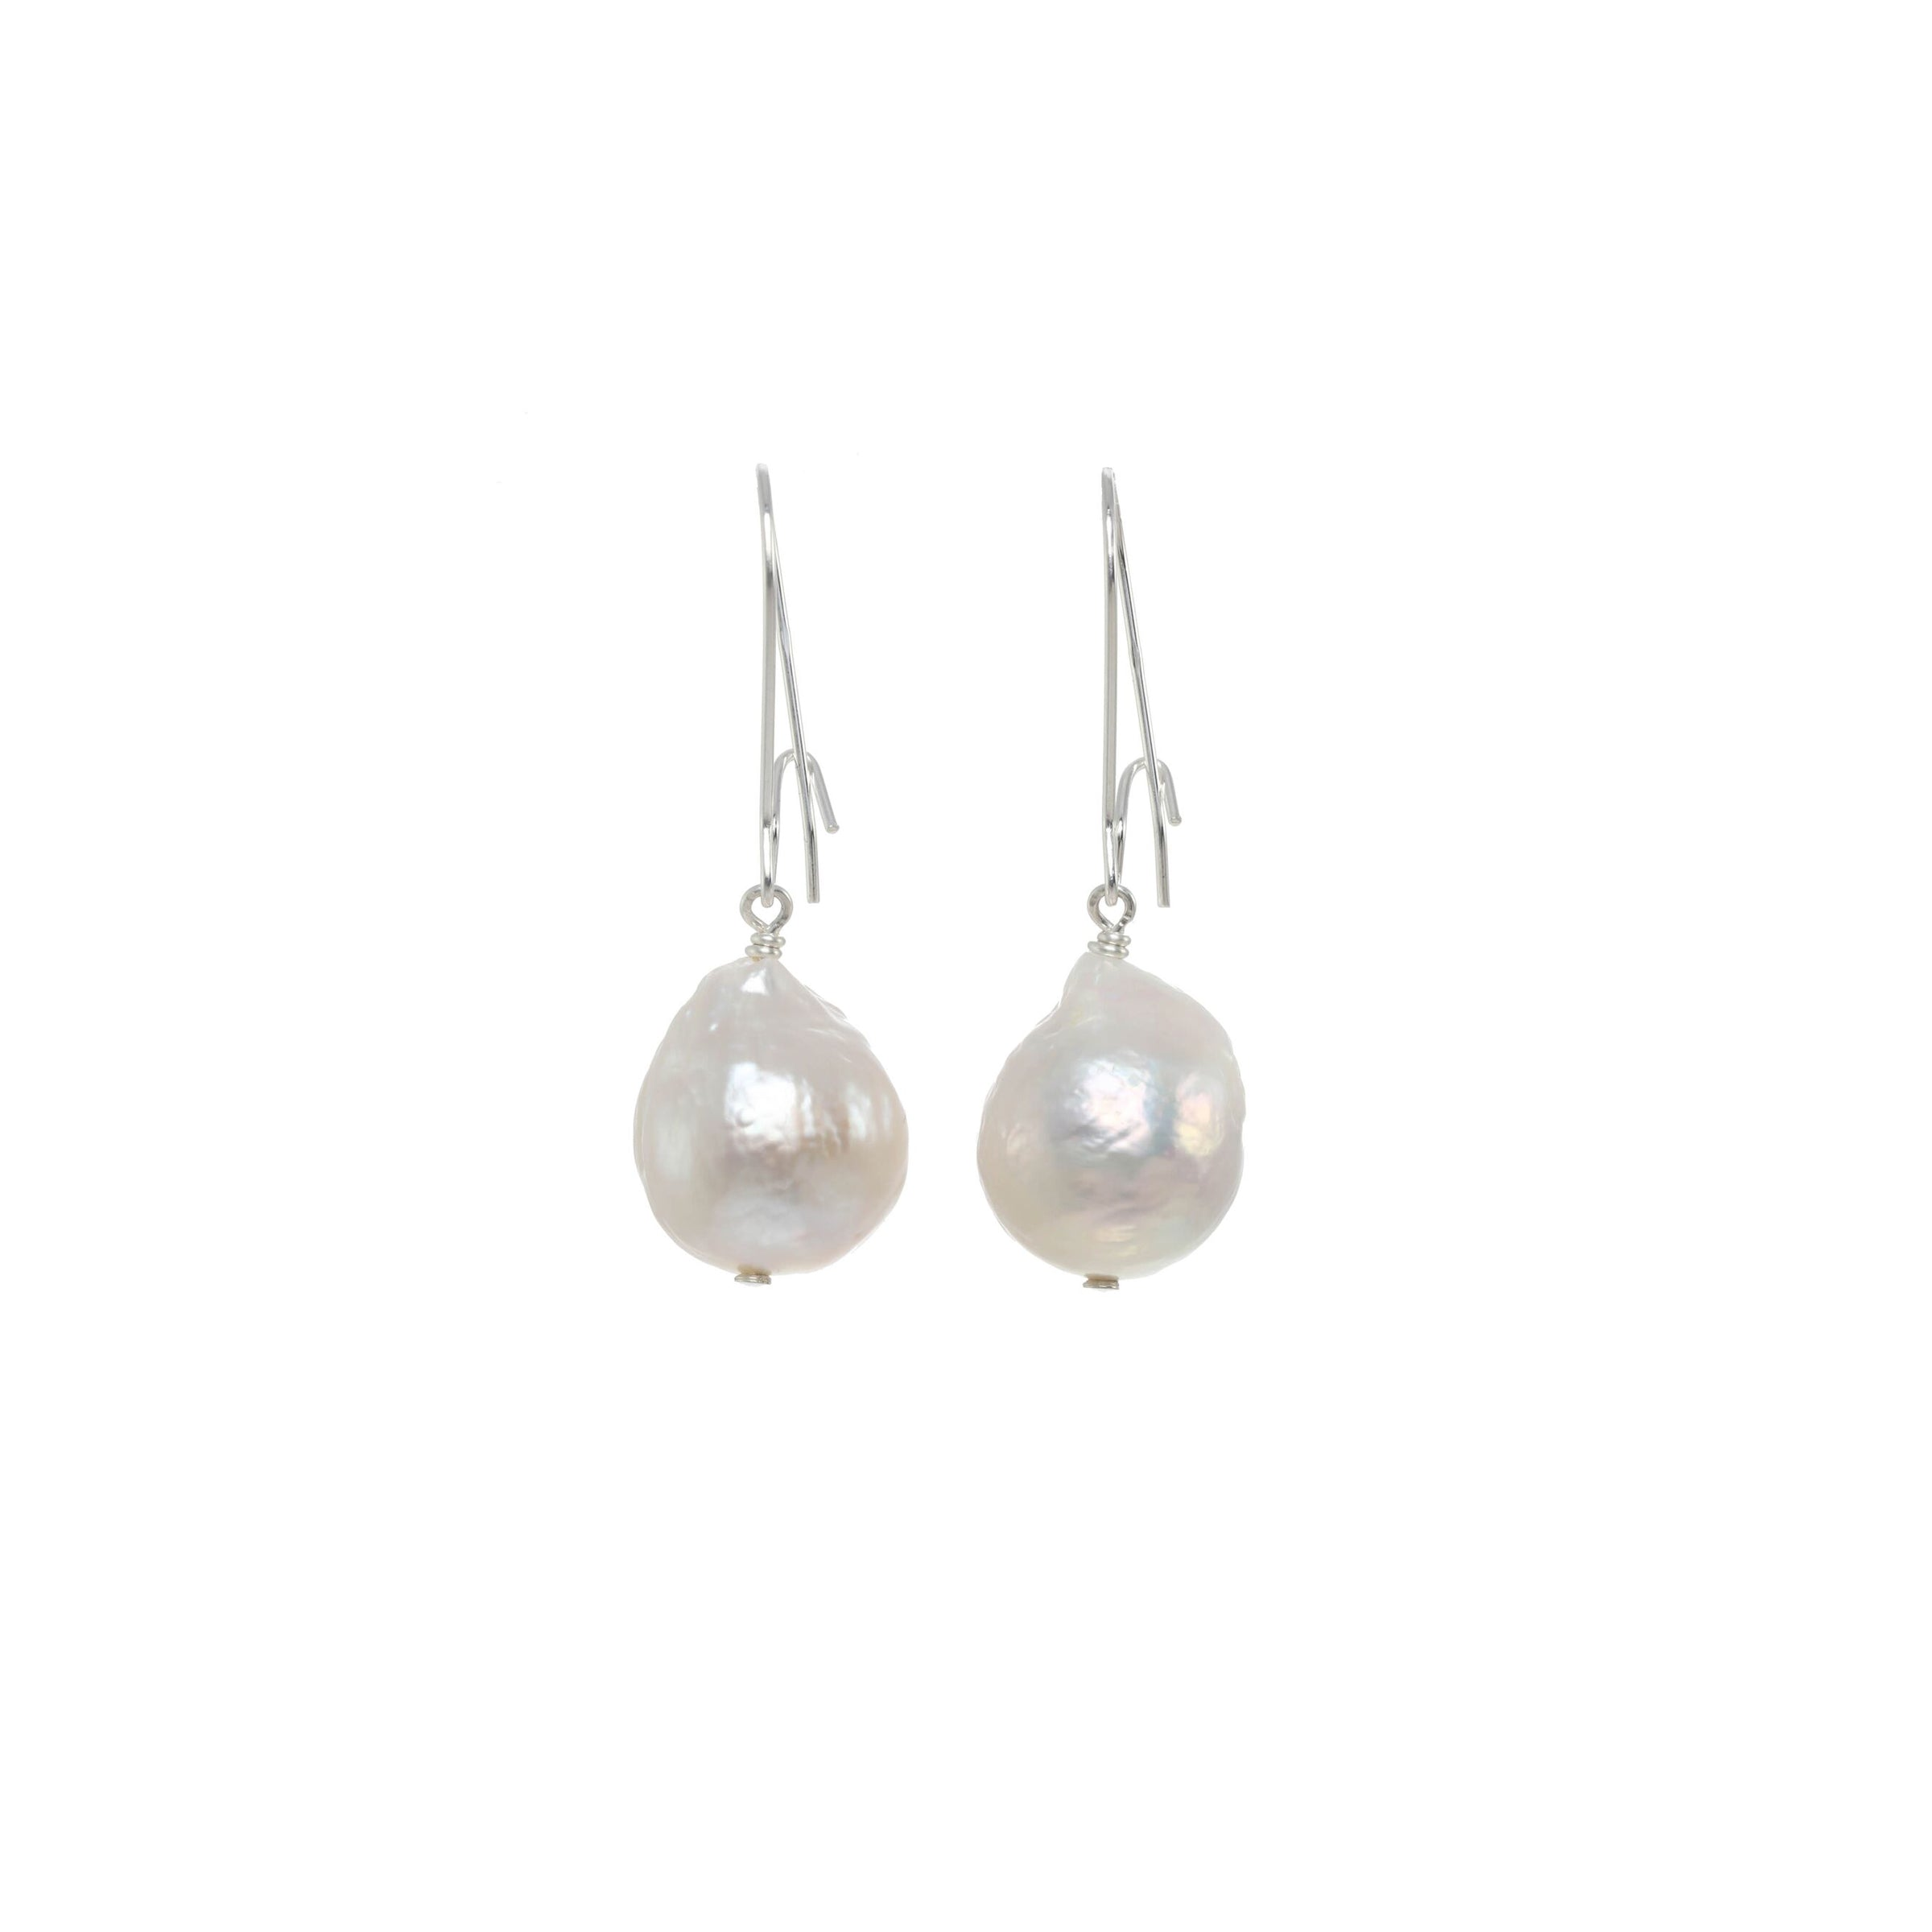 White Baroque Pearl Dangle Earrings, Sterling Silver